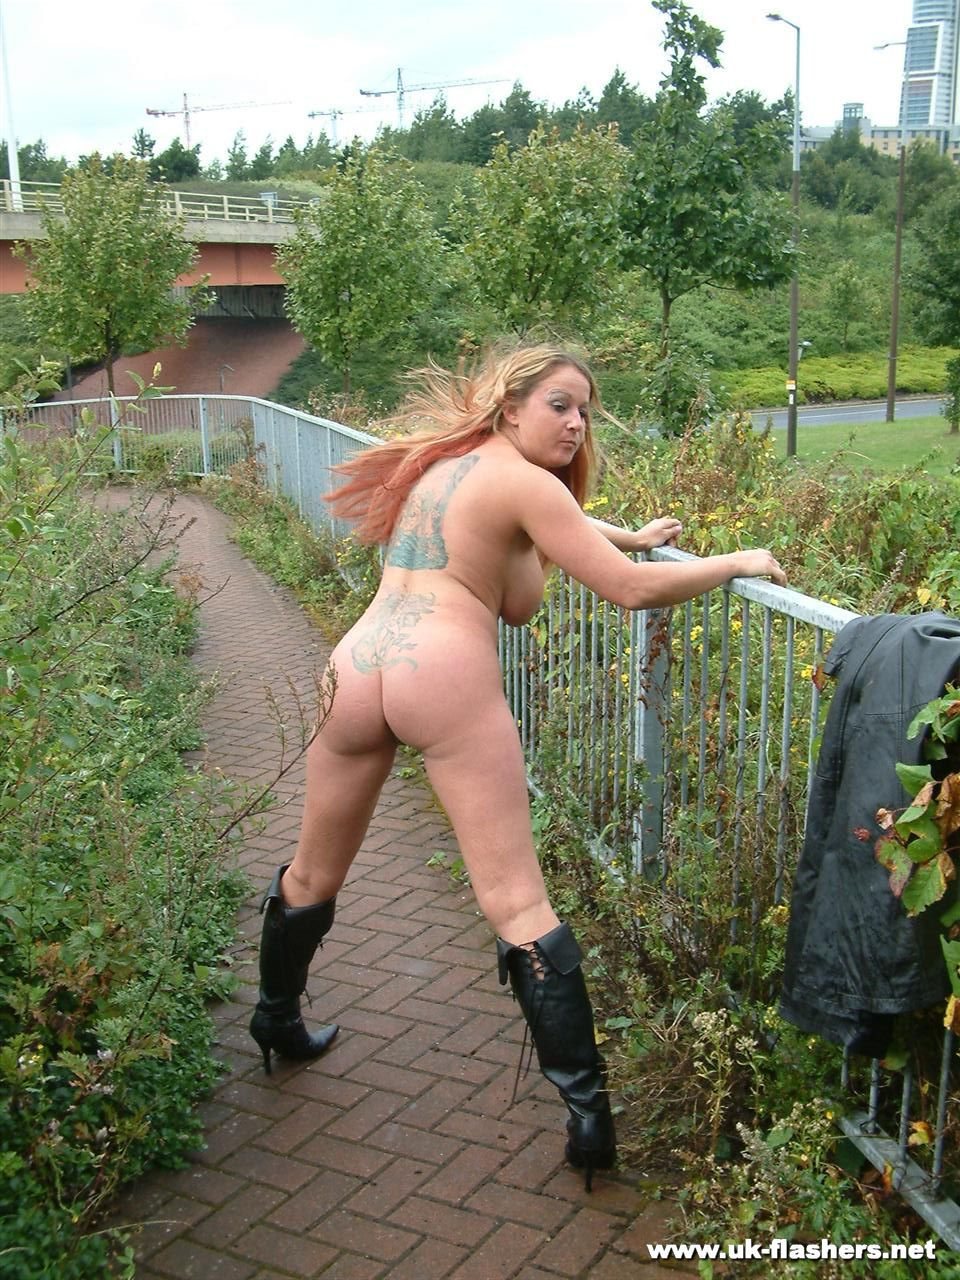 Busty milf ginas public nudity and english flashers outdoors 3